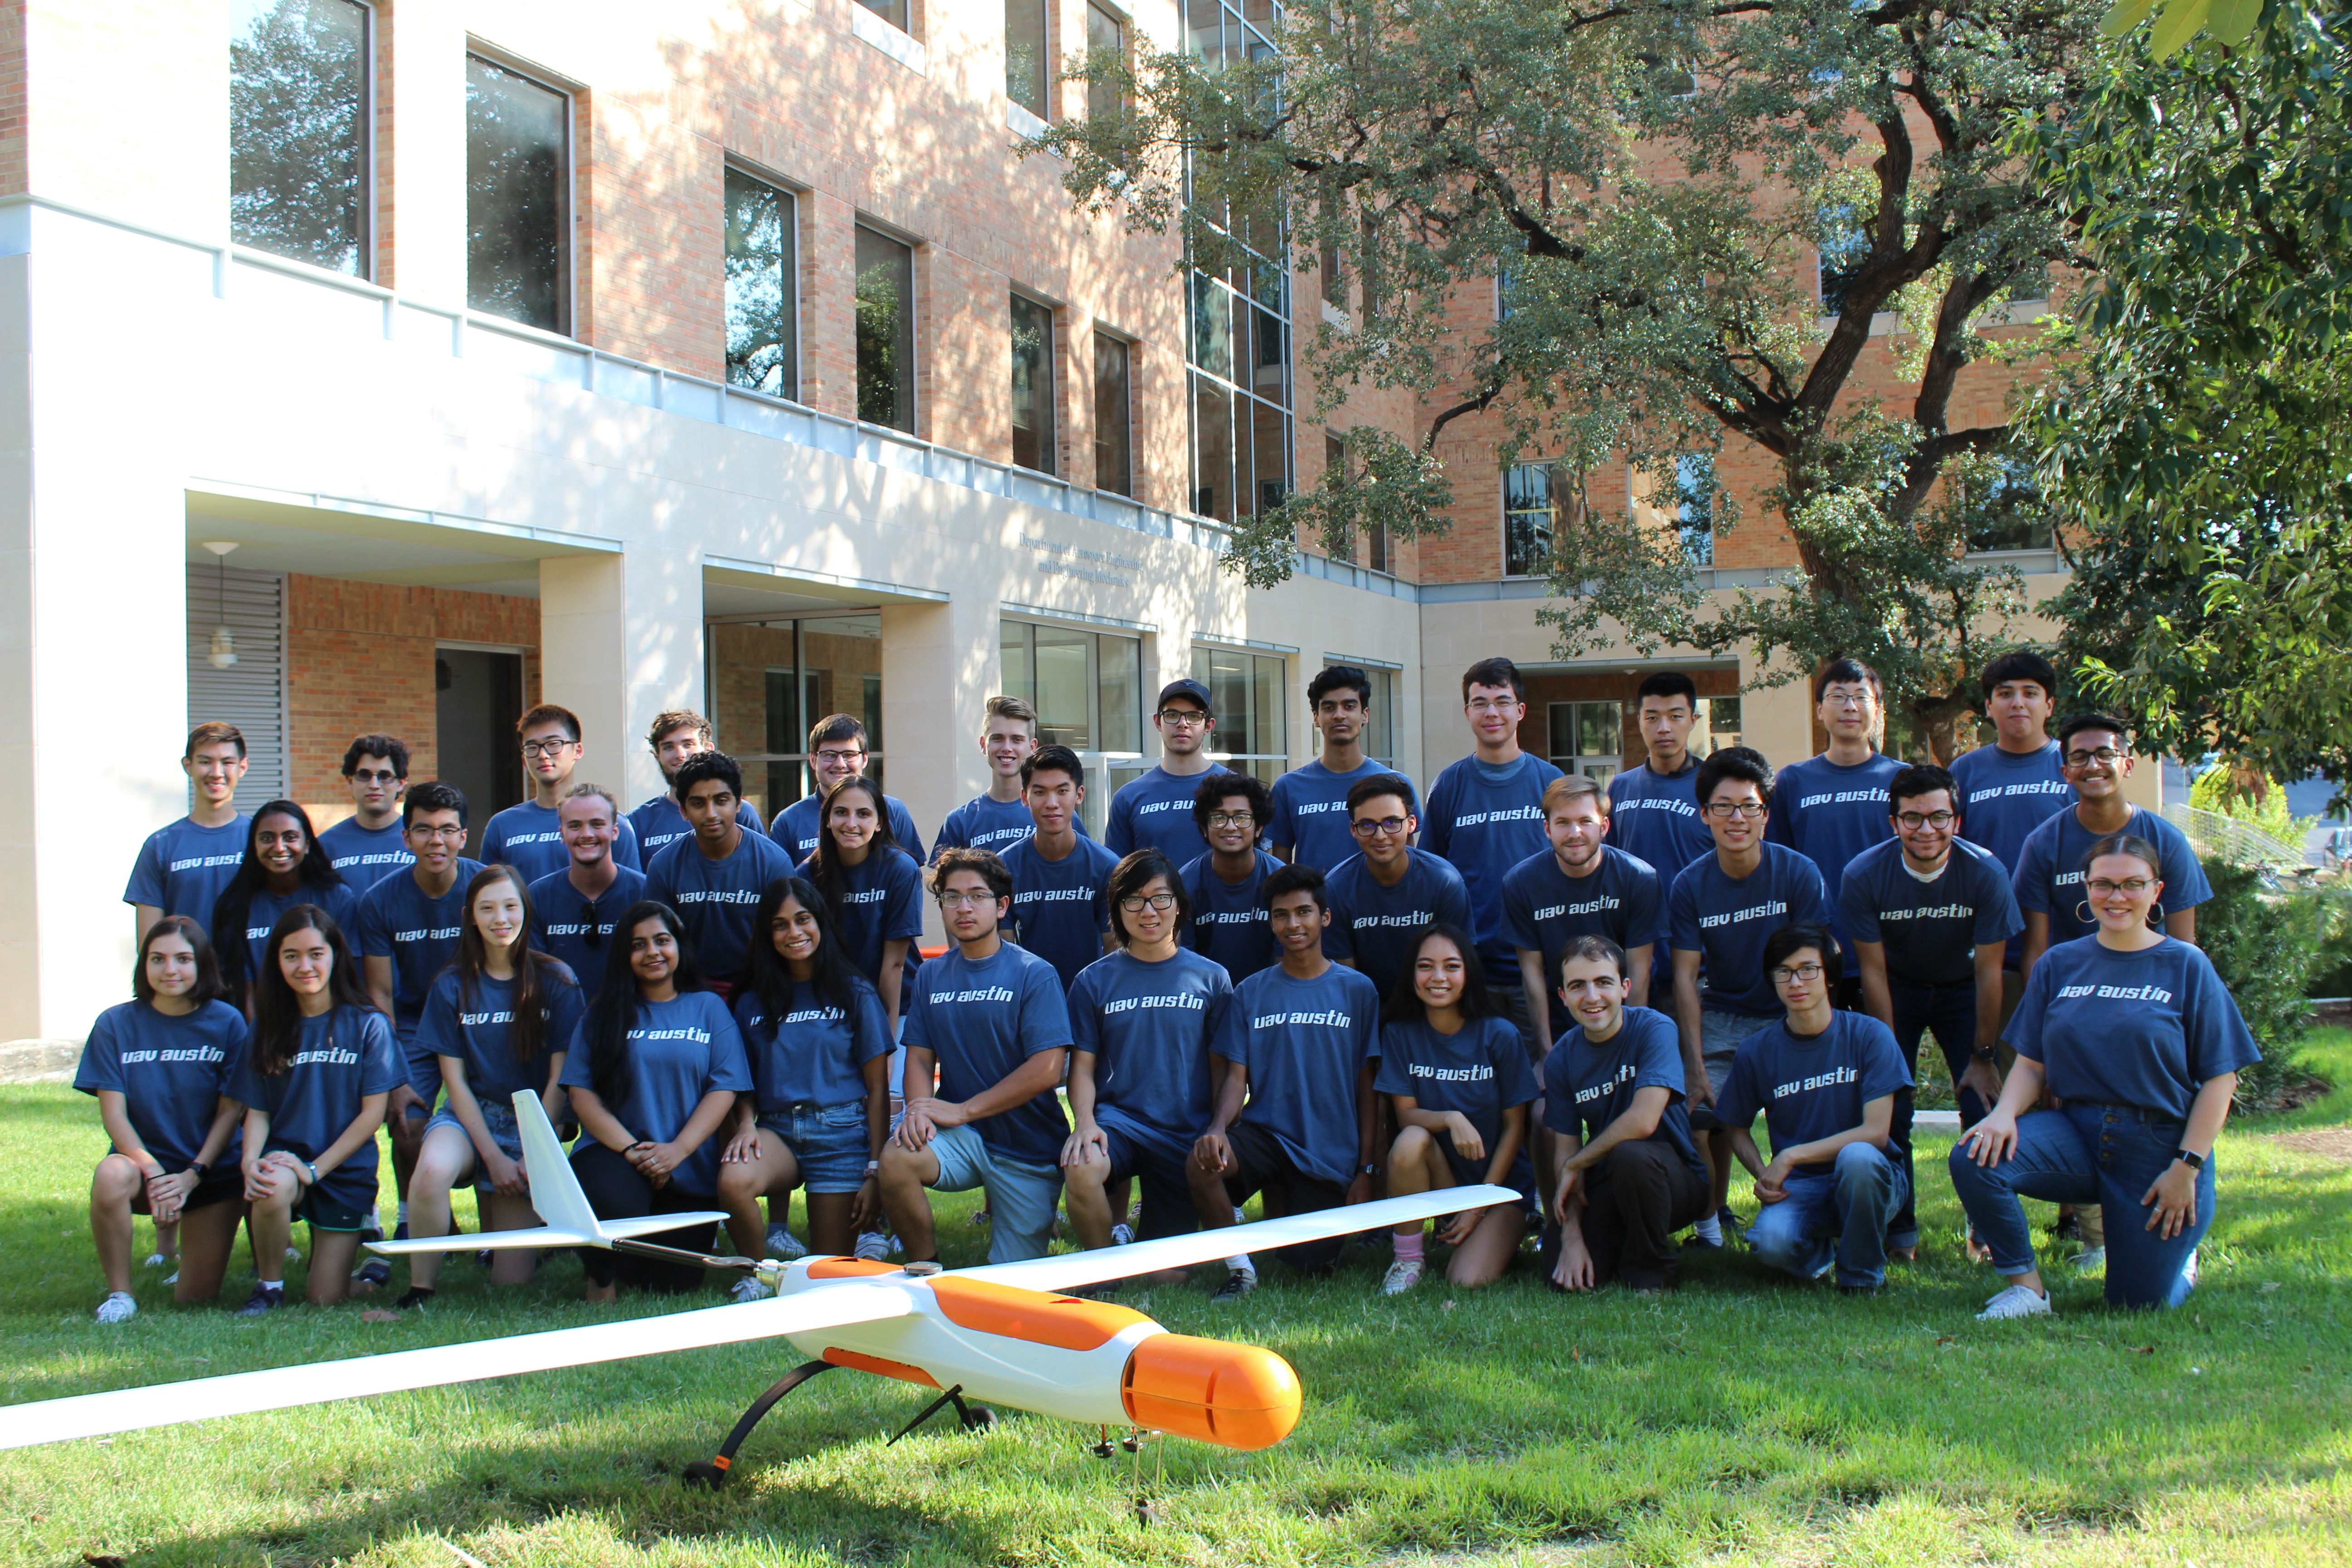 group photo of uav austin members with airplane